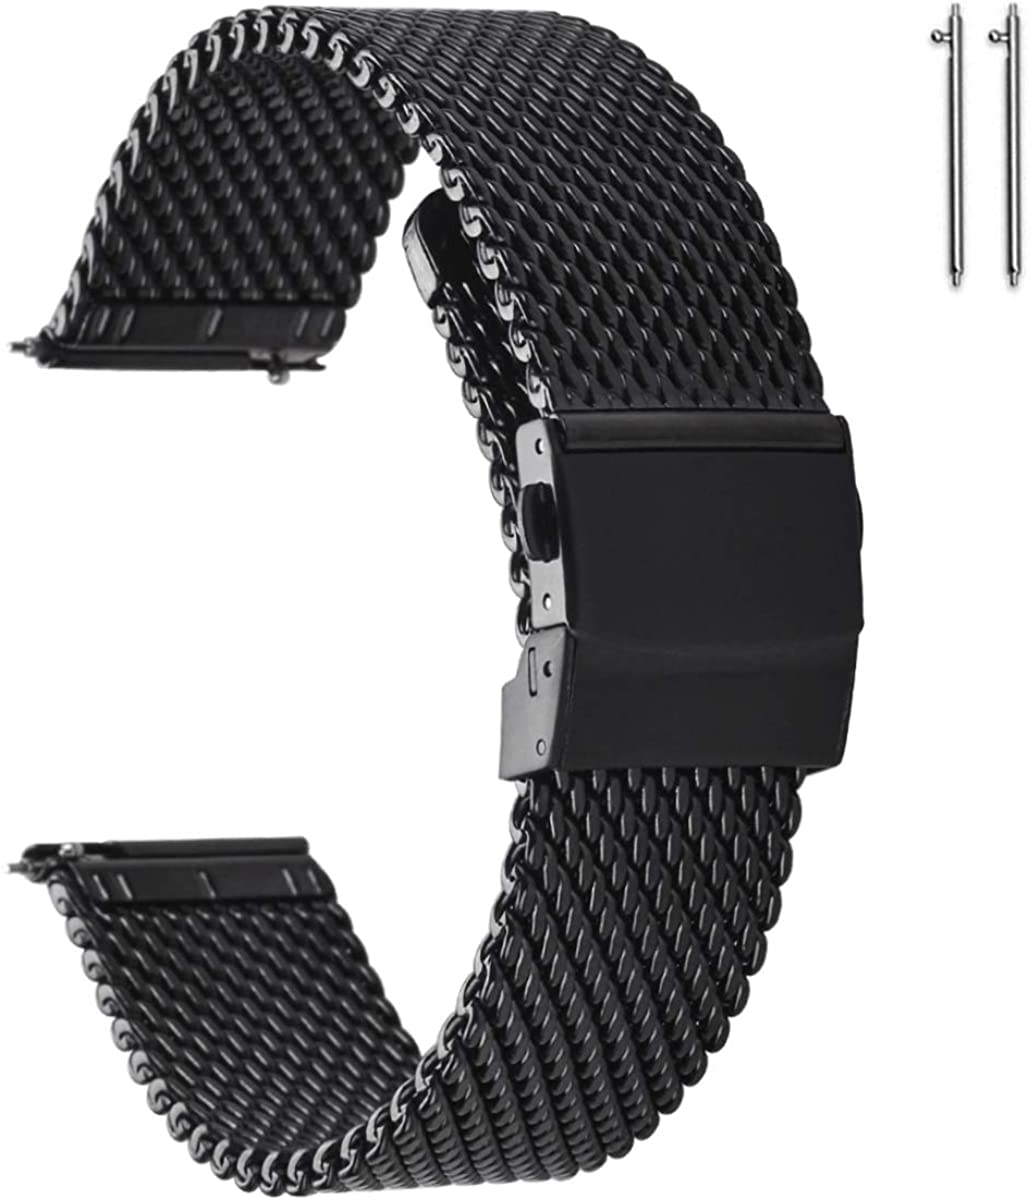 EACHE Stainless Steel Thick Mesh Watch Bands for Mens, Quick Release Adjustable Heavy Duty Mesh Watch Straps 18mm 20mm 22mm